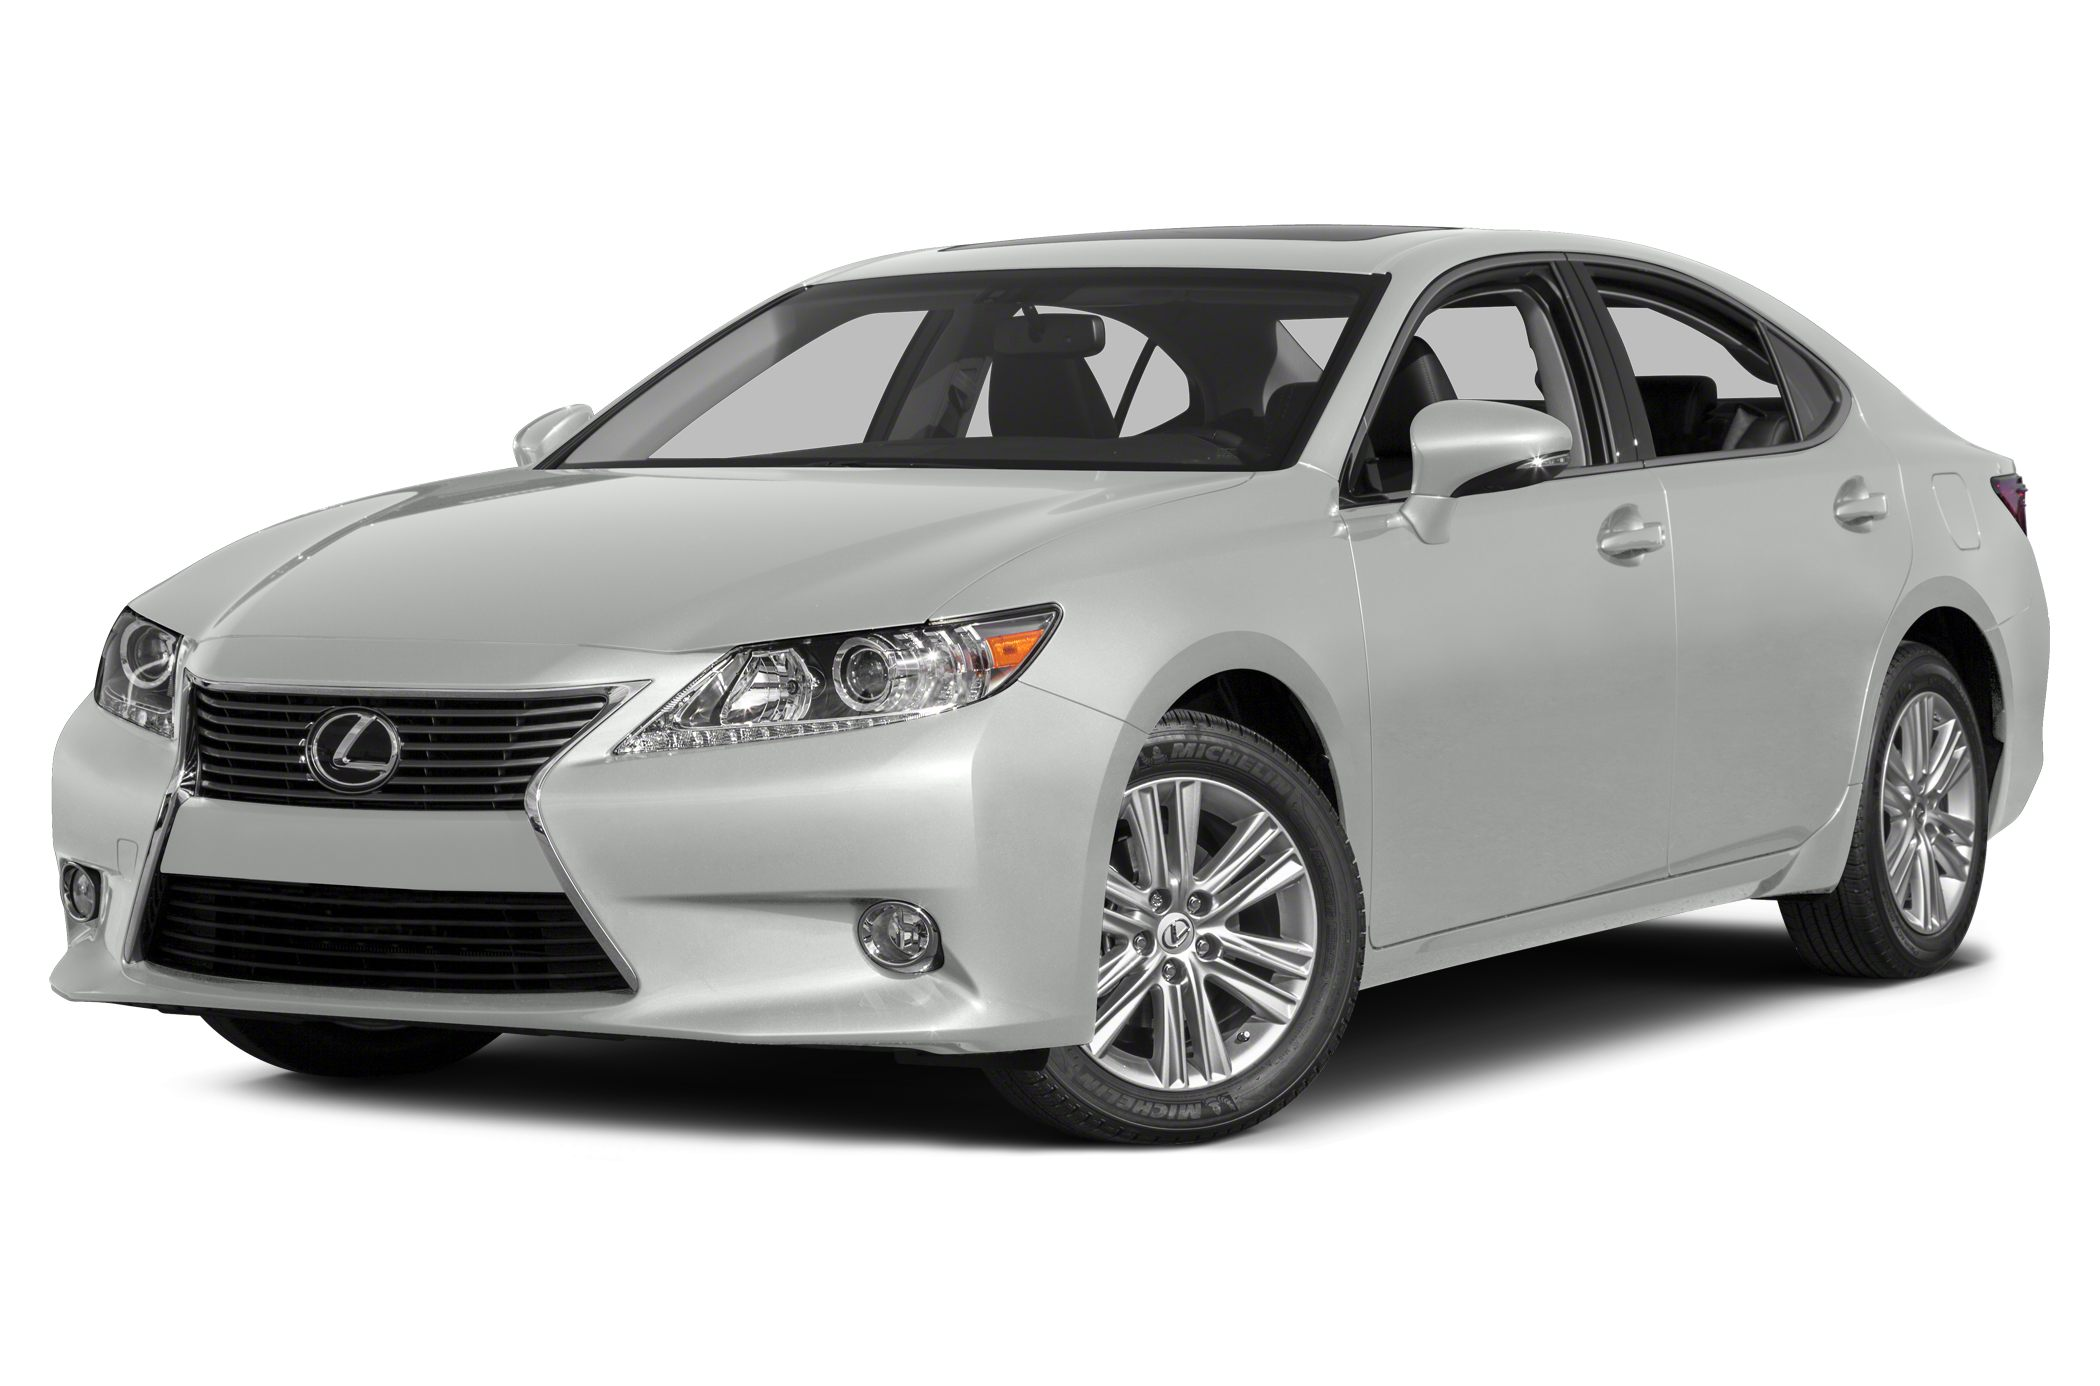 2015 Lexus ES 350 Base Sedan for sale in Tulsa for $47,919 with 0 miles.